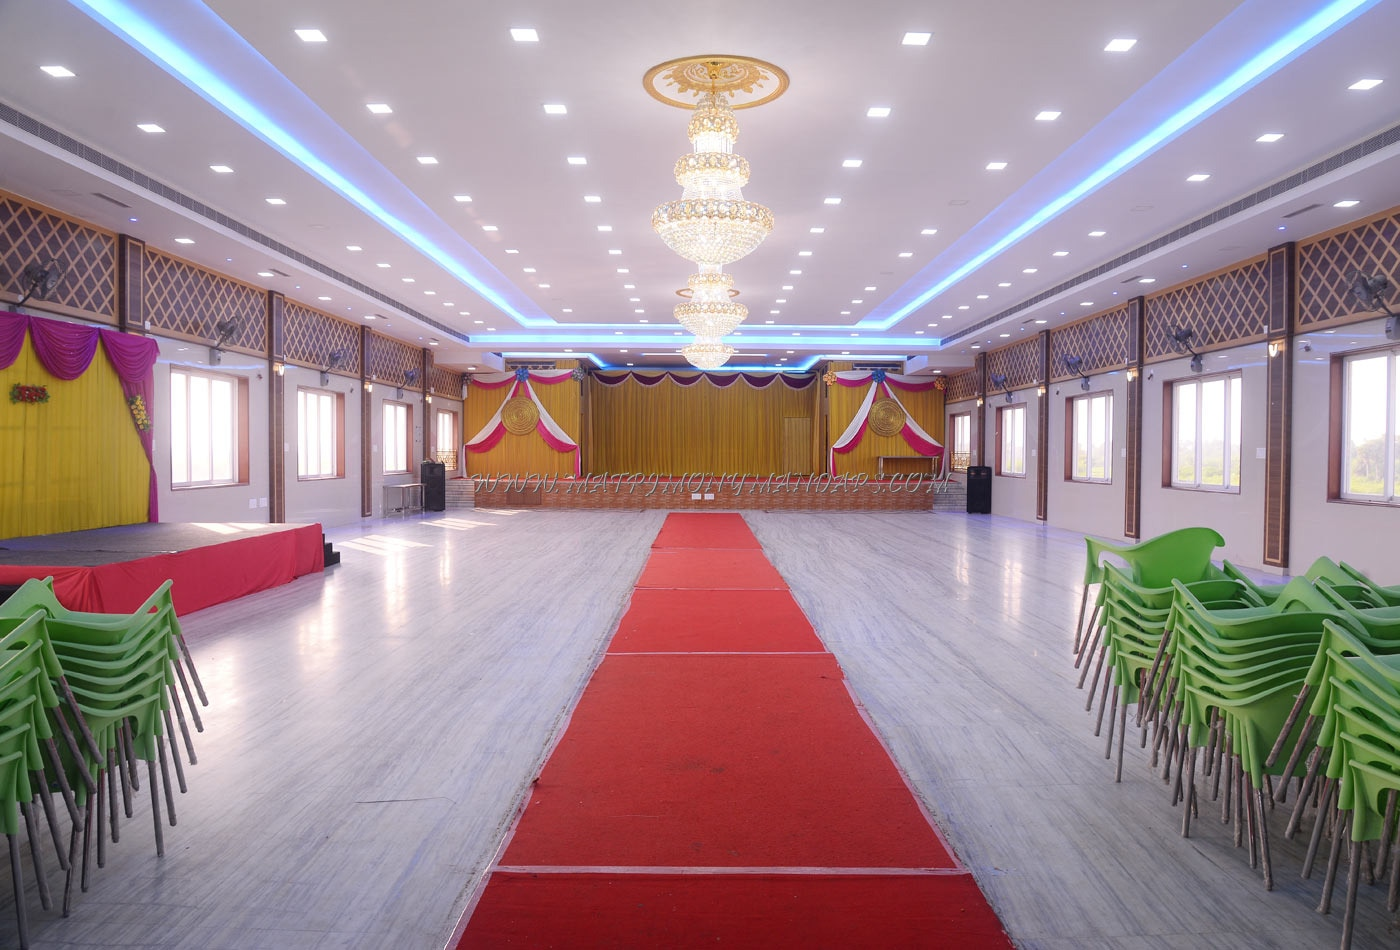 Find the availability of the Sri Devi Vinayaga Thirumana Mahal (A/C) in Puliyur Village, Chennai and avail special offers